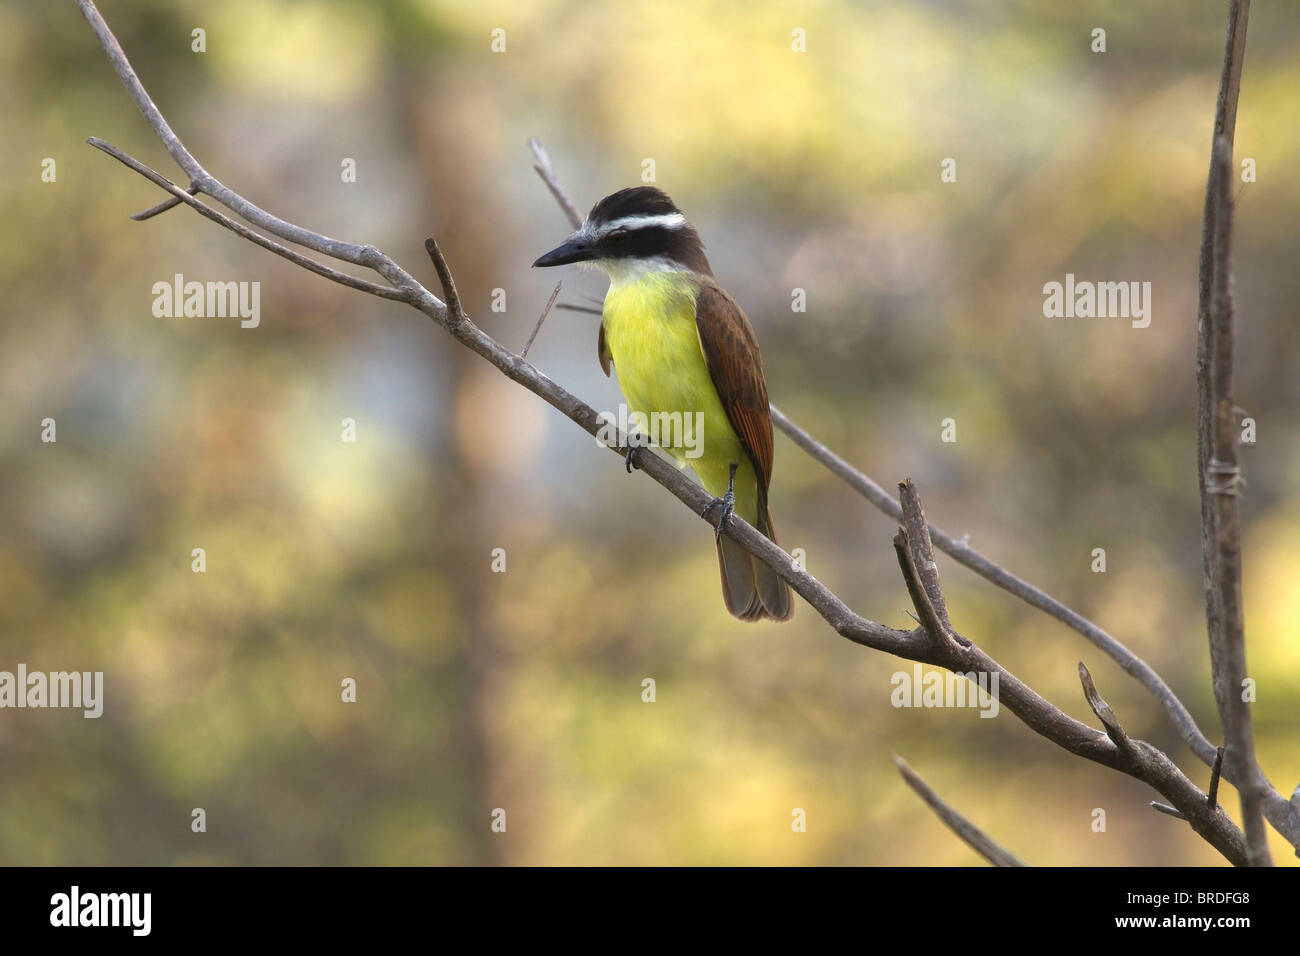 Great Kiskadee (Pitangus sulphuratus trinitatis) perched on branch at Asa Wright Nature Centre, Trinidad, West Indies. - Stock Image